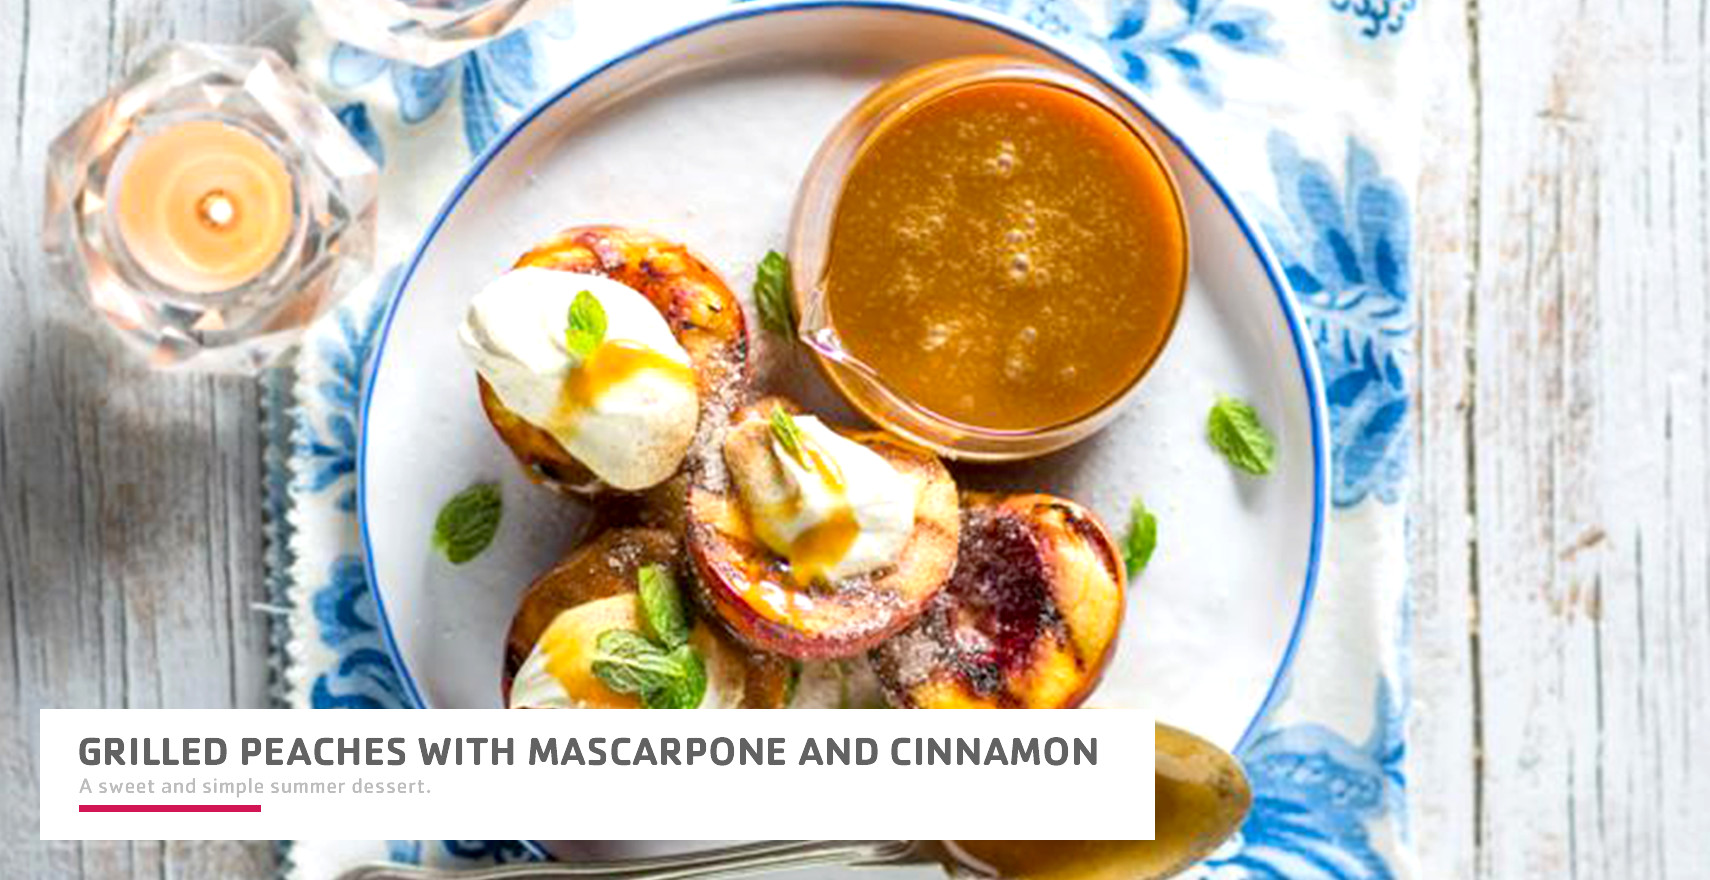 Grilled peaches with mascarpone header image.jpg